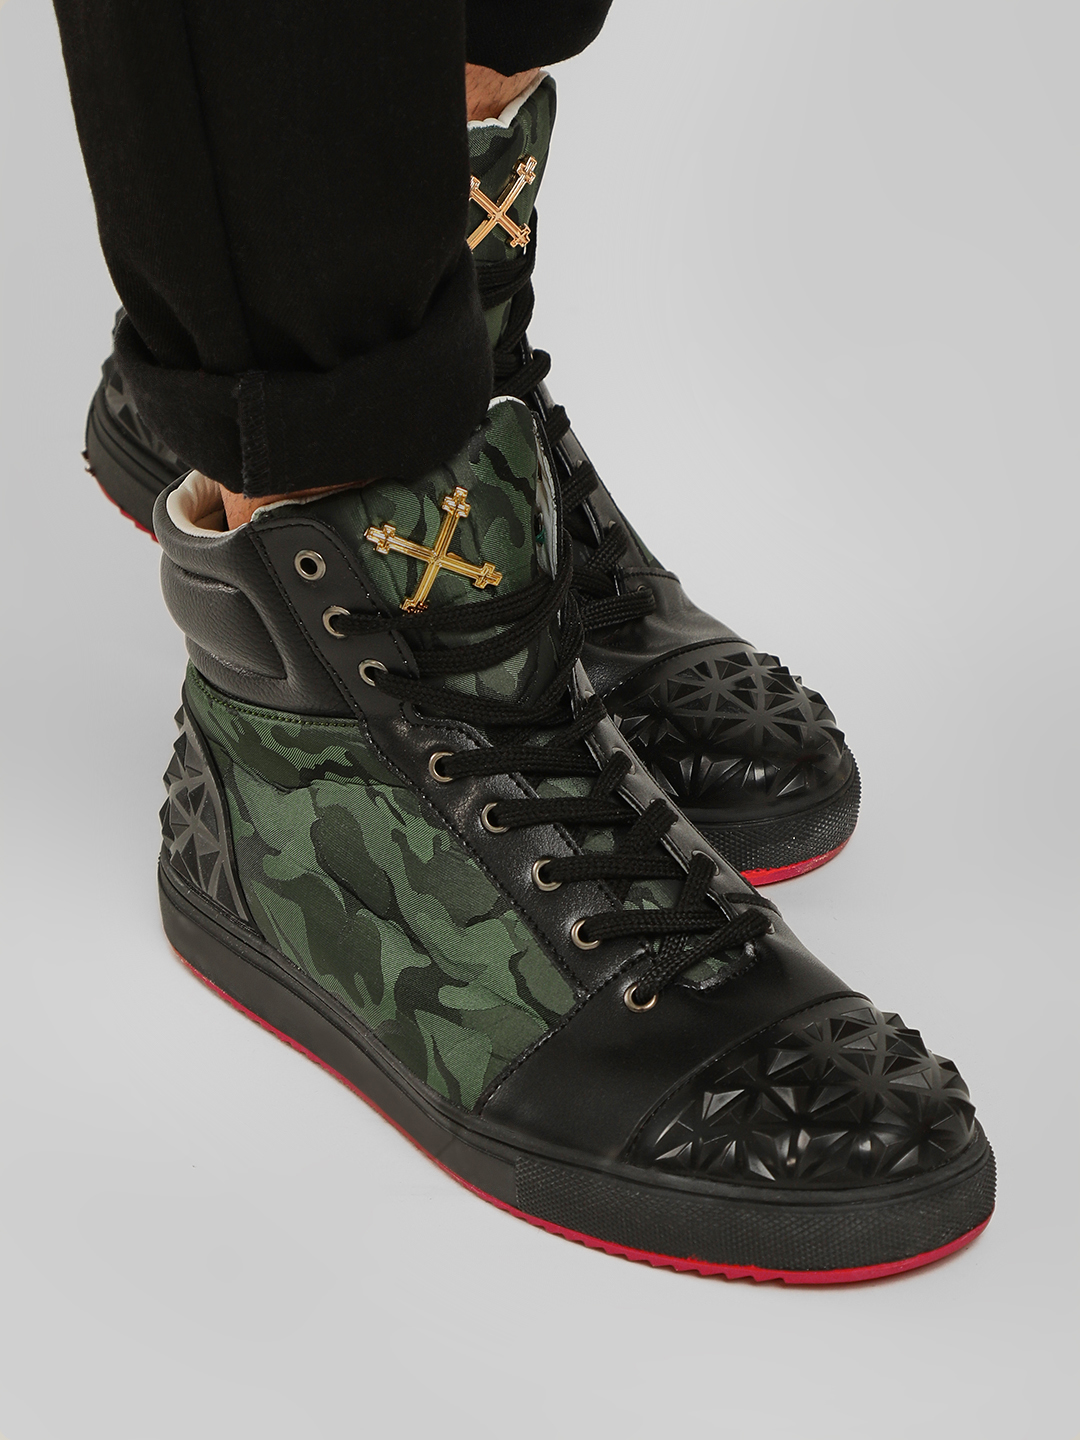 Tiktauli Black Camo Textured High Top Shoes 1